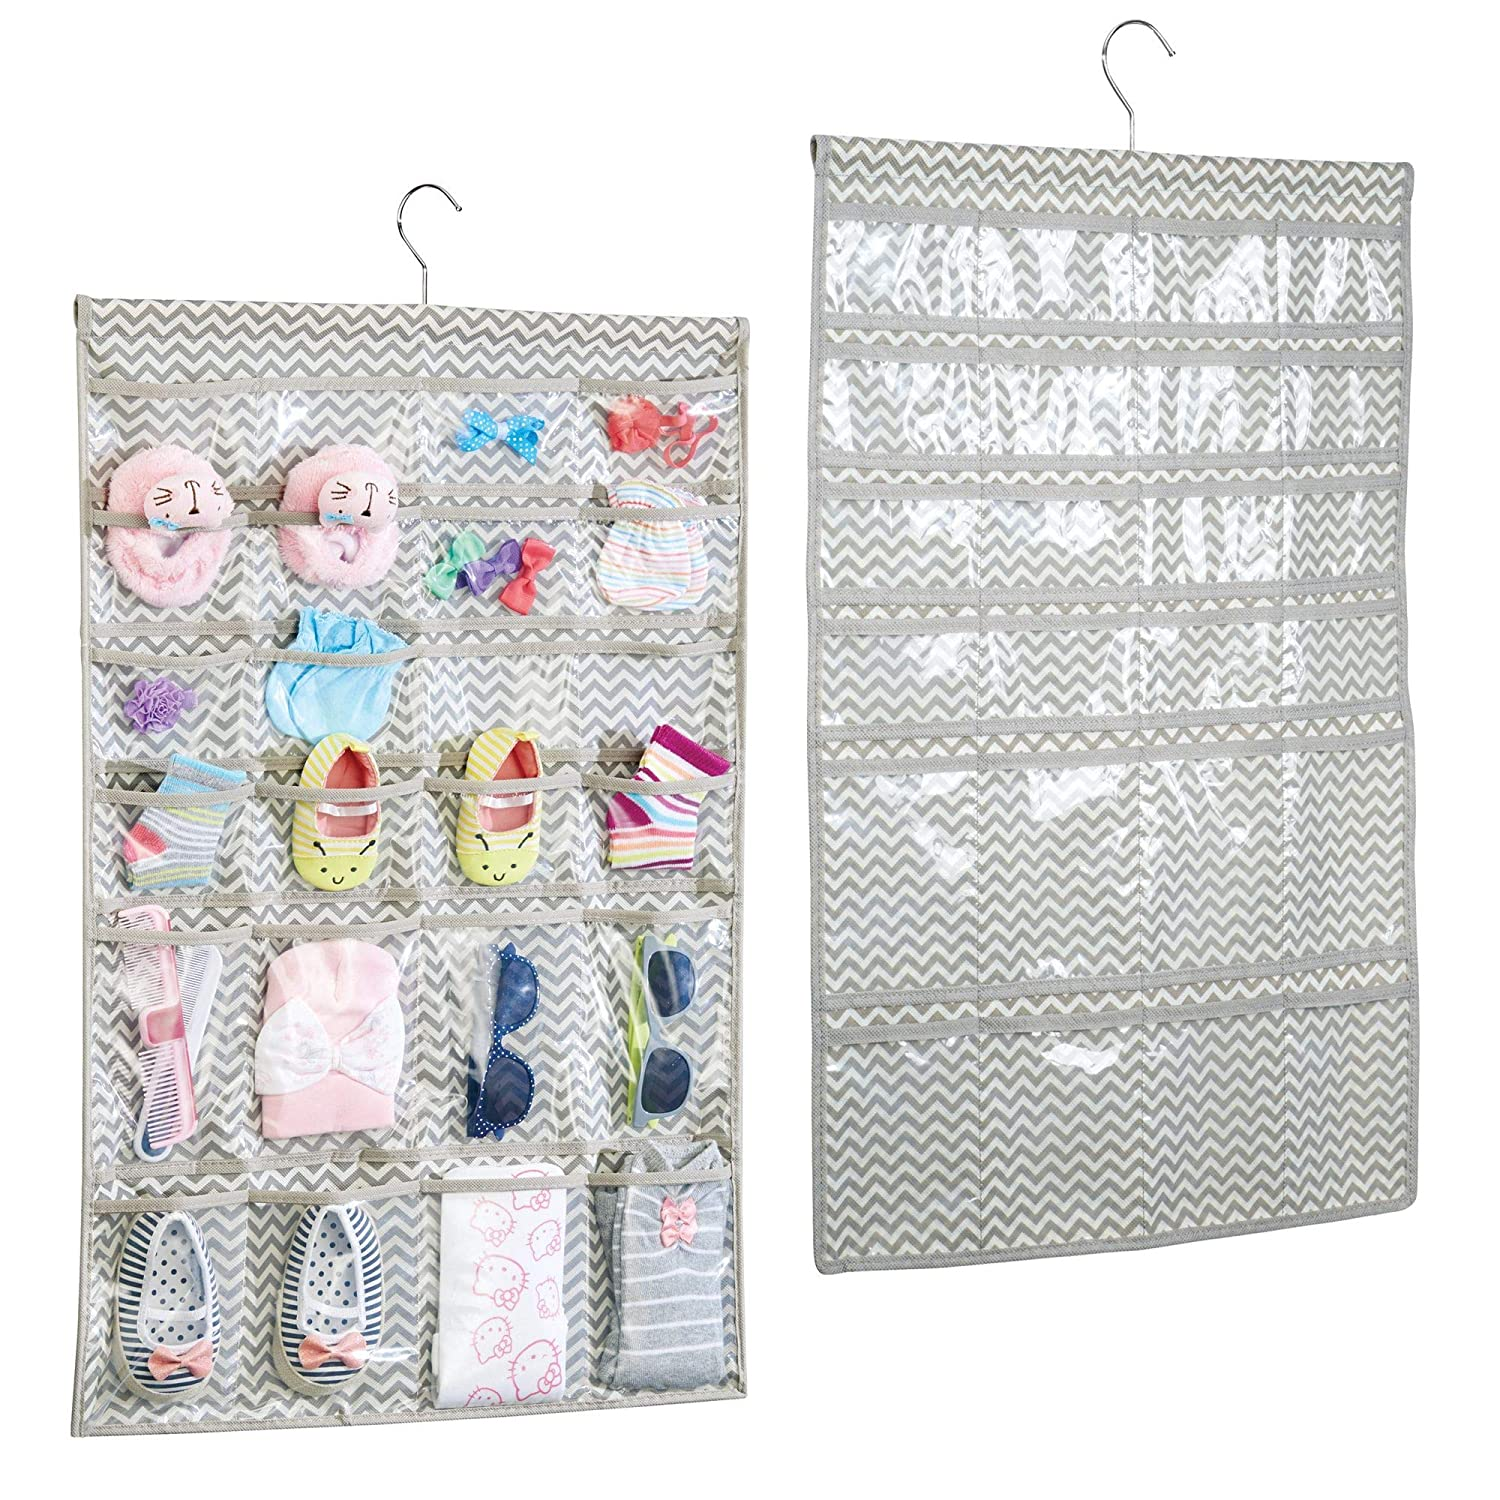 mDesign Hanging Fabric Baby Nursery Closet Organizer Hats, Bows, Shoes, Socks, Accessories - Pack of 2, 48 Pockets, Taupe/Natural MetroDecor 7329MDB